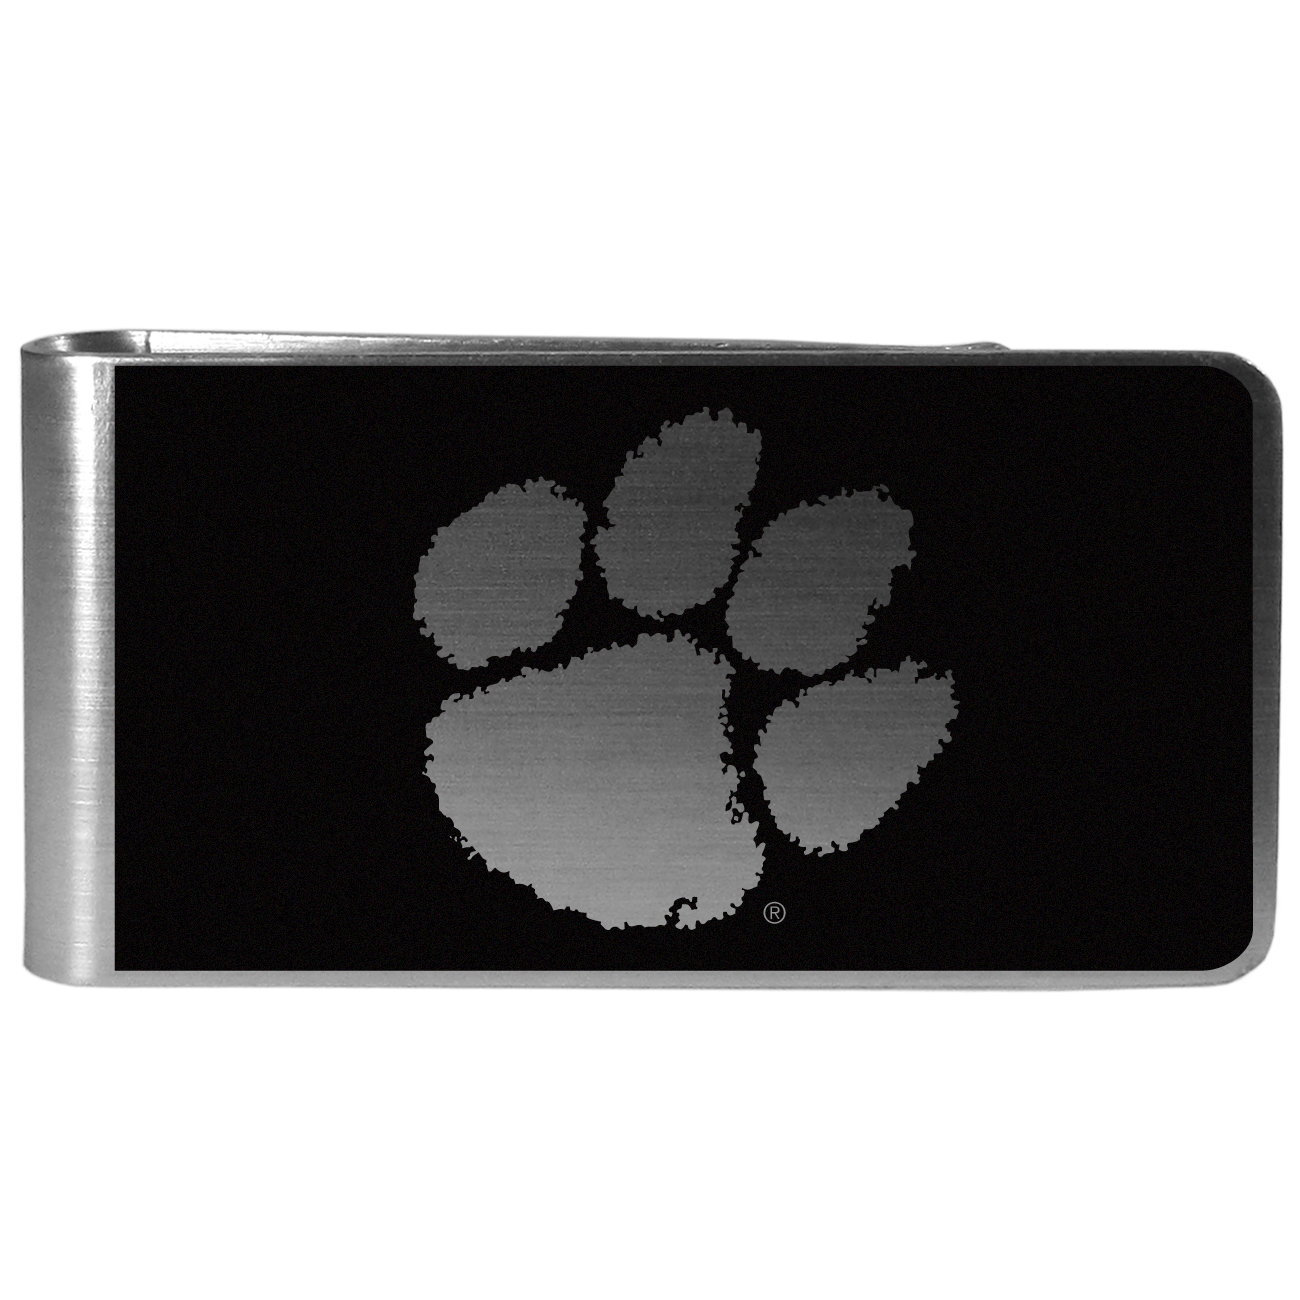 Clemson Tigers Black and Steel Money Clip - Our monochromatic steel money clips have a classic style and superior quality. The strong, steel clip has a black overlay of the Clemson Tigers logo over the brushed metal finish creating a stylish men's fashion accessory that would make any fan proud.